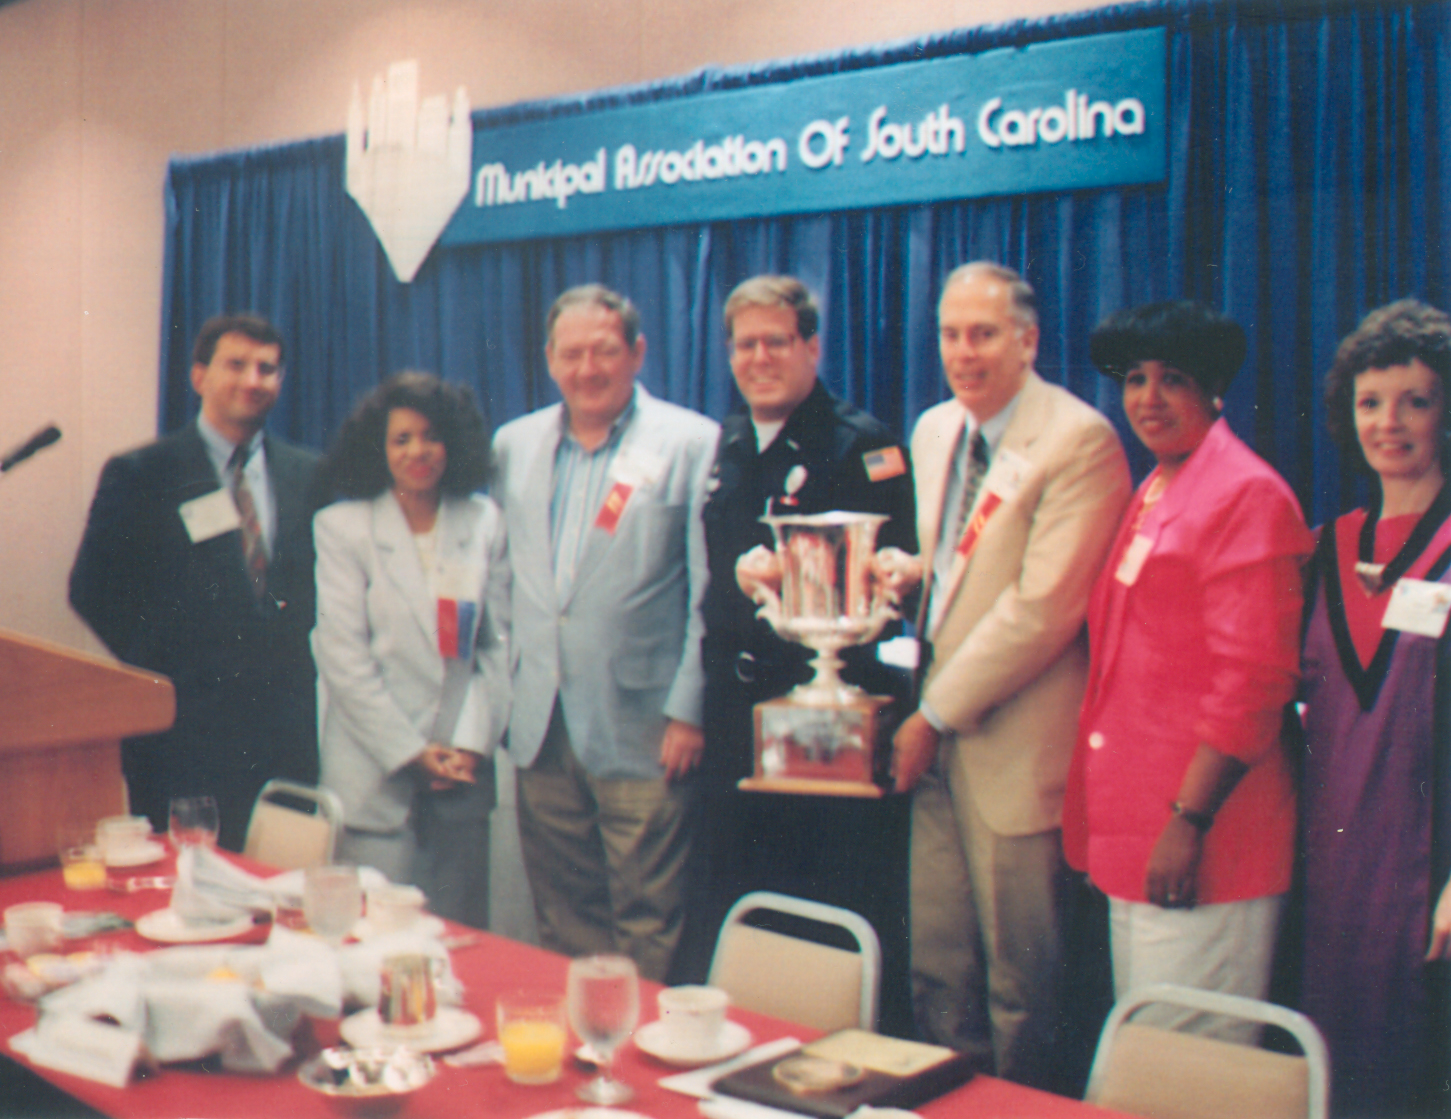 Photo of Lessie Price, Skipper Perry, Fred Cavanaugh, Beverly Clyburn, and others